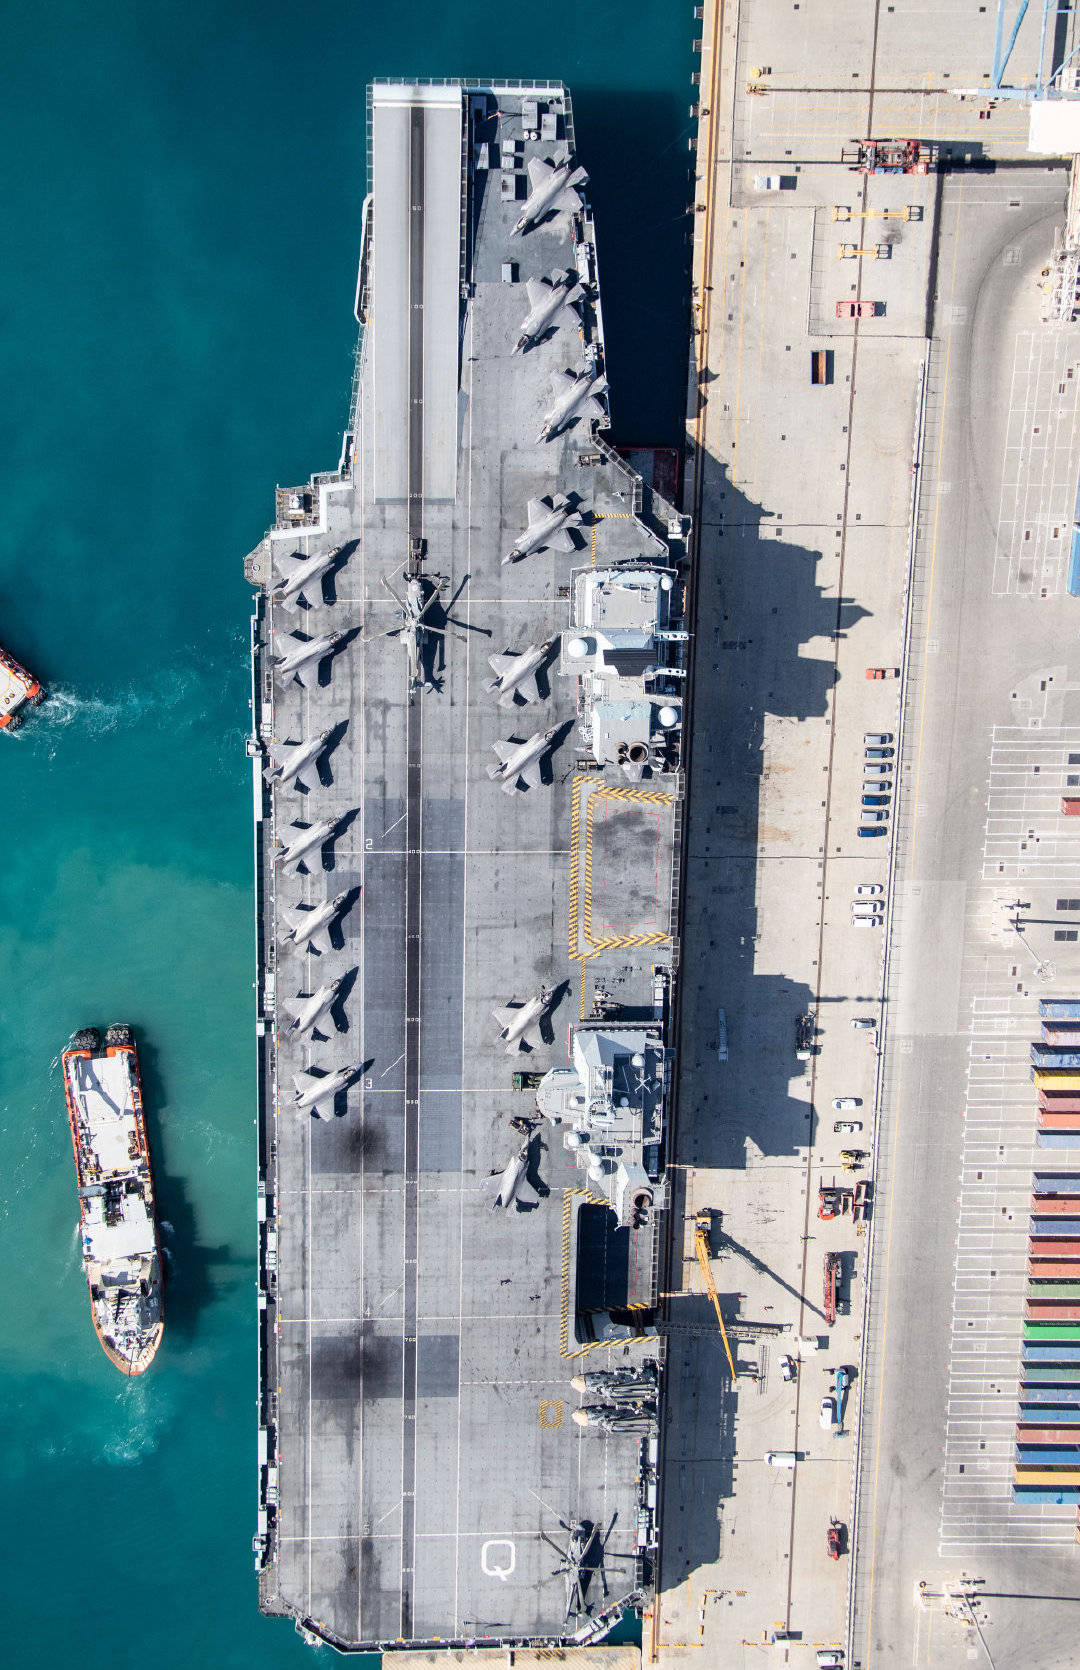 F-35B fighter aircraft on the deck of HMS Queen Elizabeth